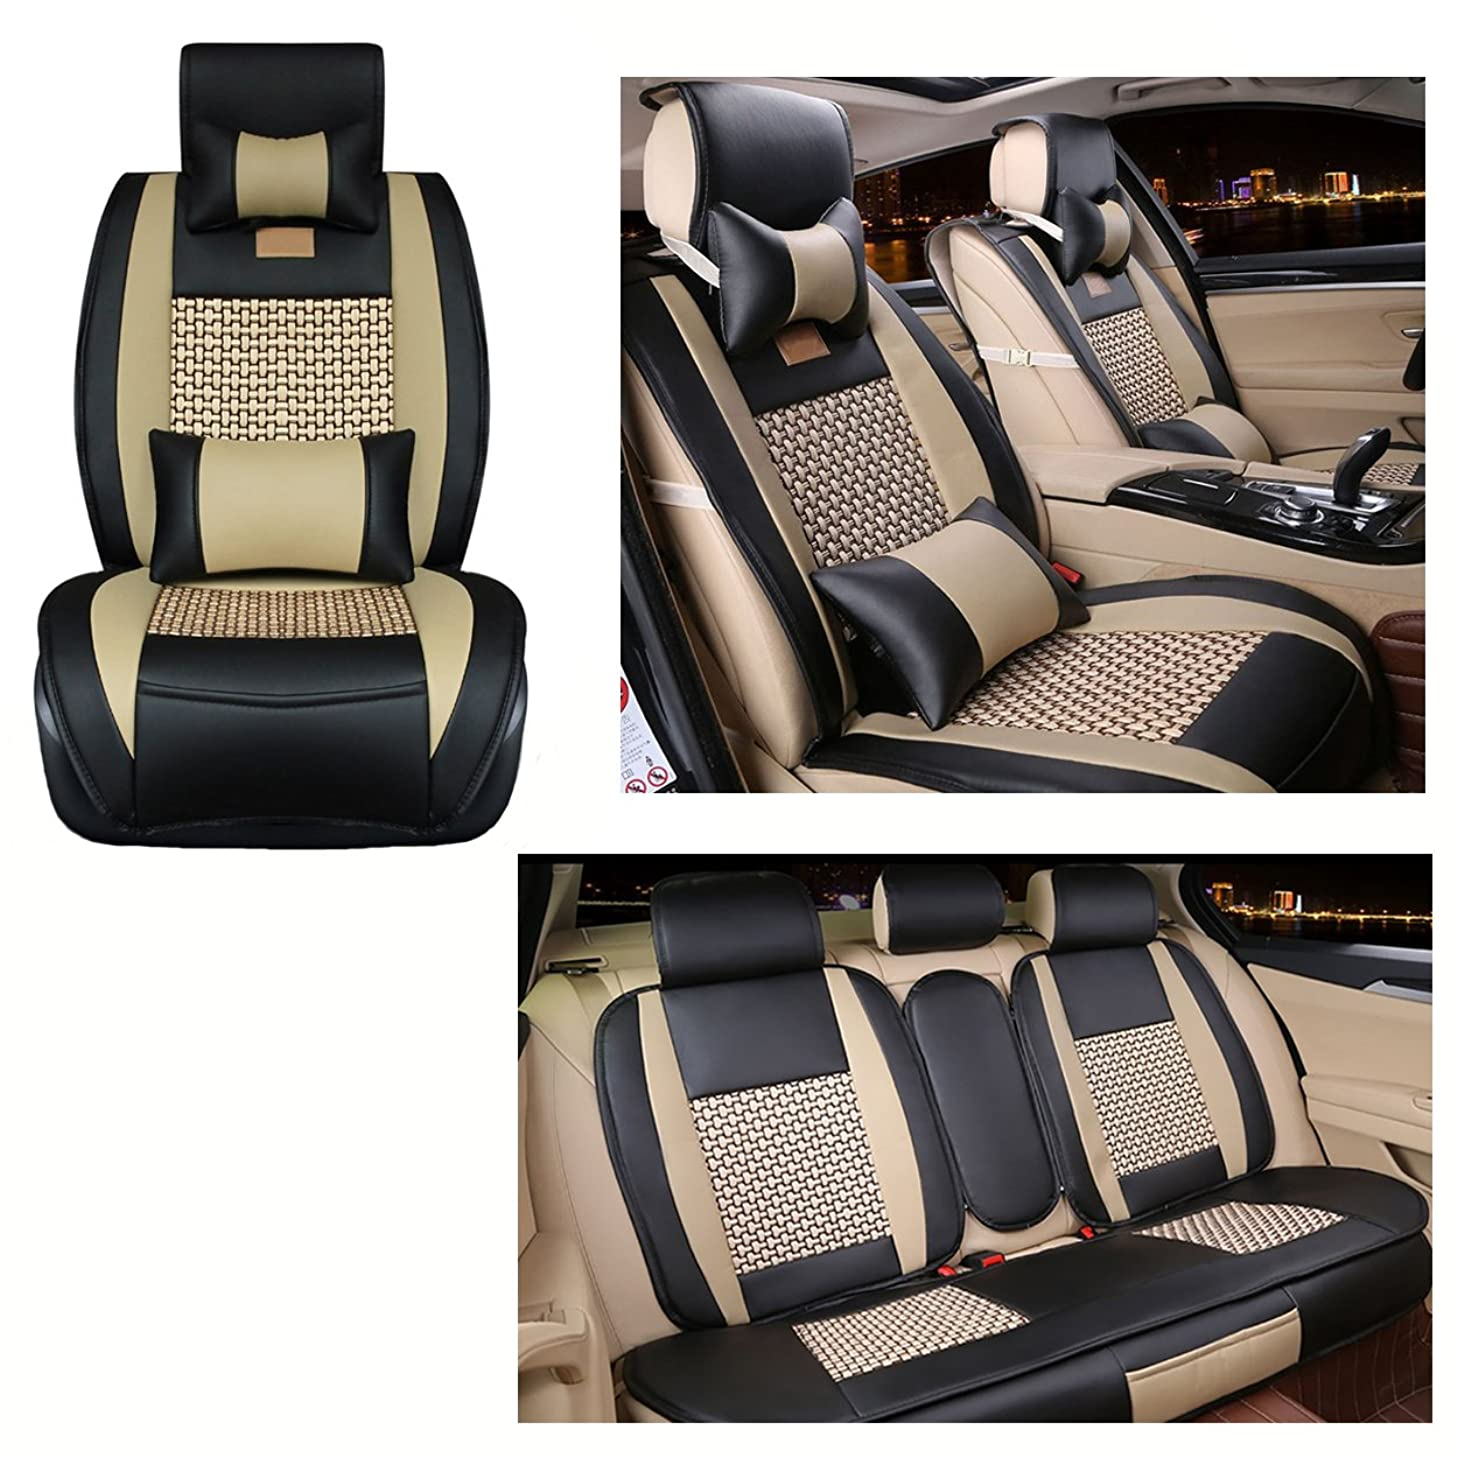 Leather Seat Covers Full Set - 10 Pieces for 5 Seats Car Automotive Universal Fit Seat Covers with Front/Rear/Head/Car Seat Cushion Cover,Car Seat Covers for Year Round